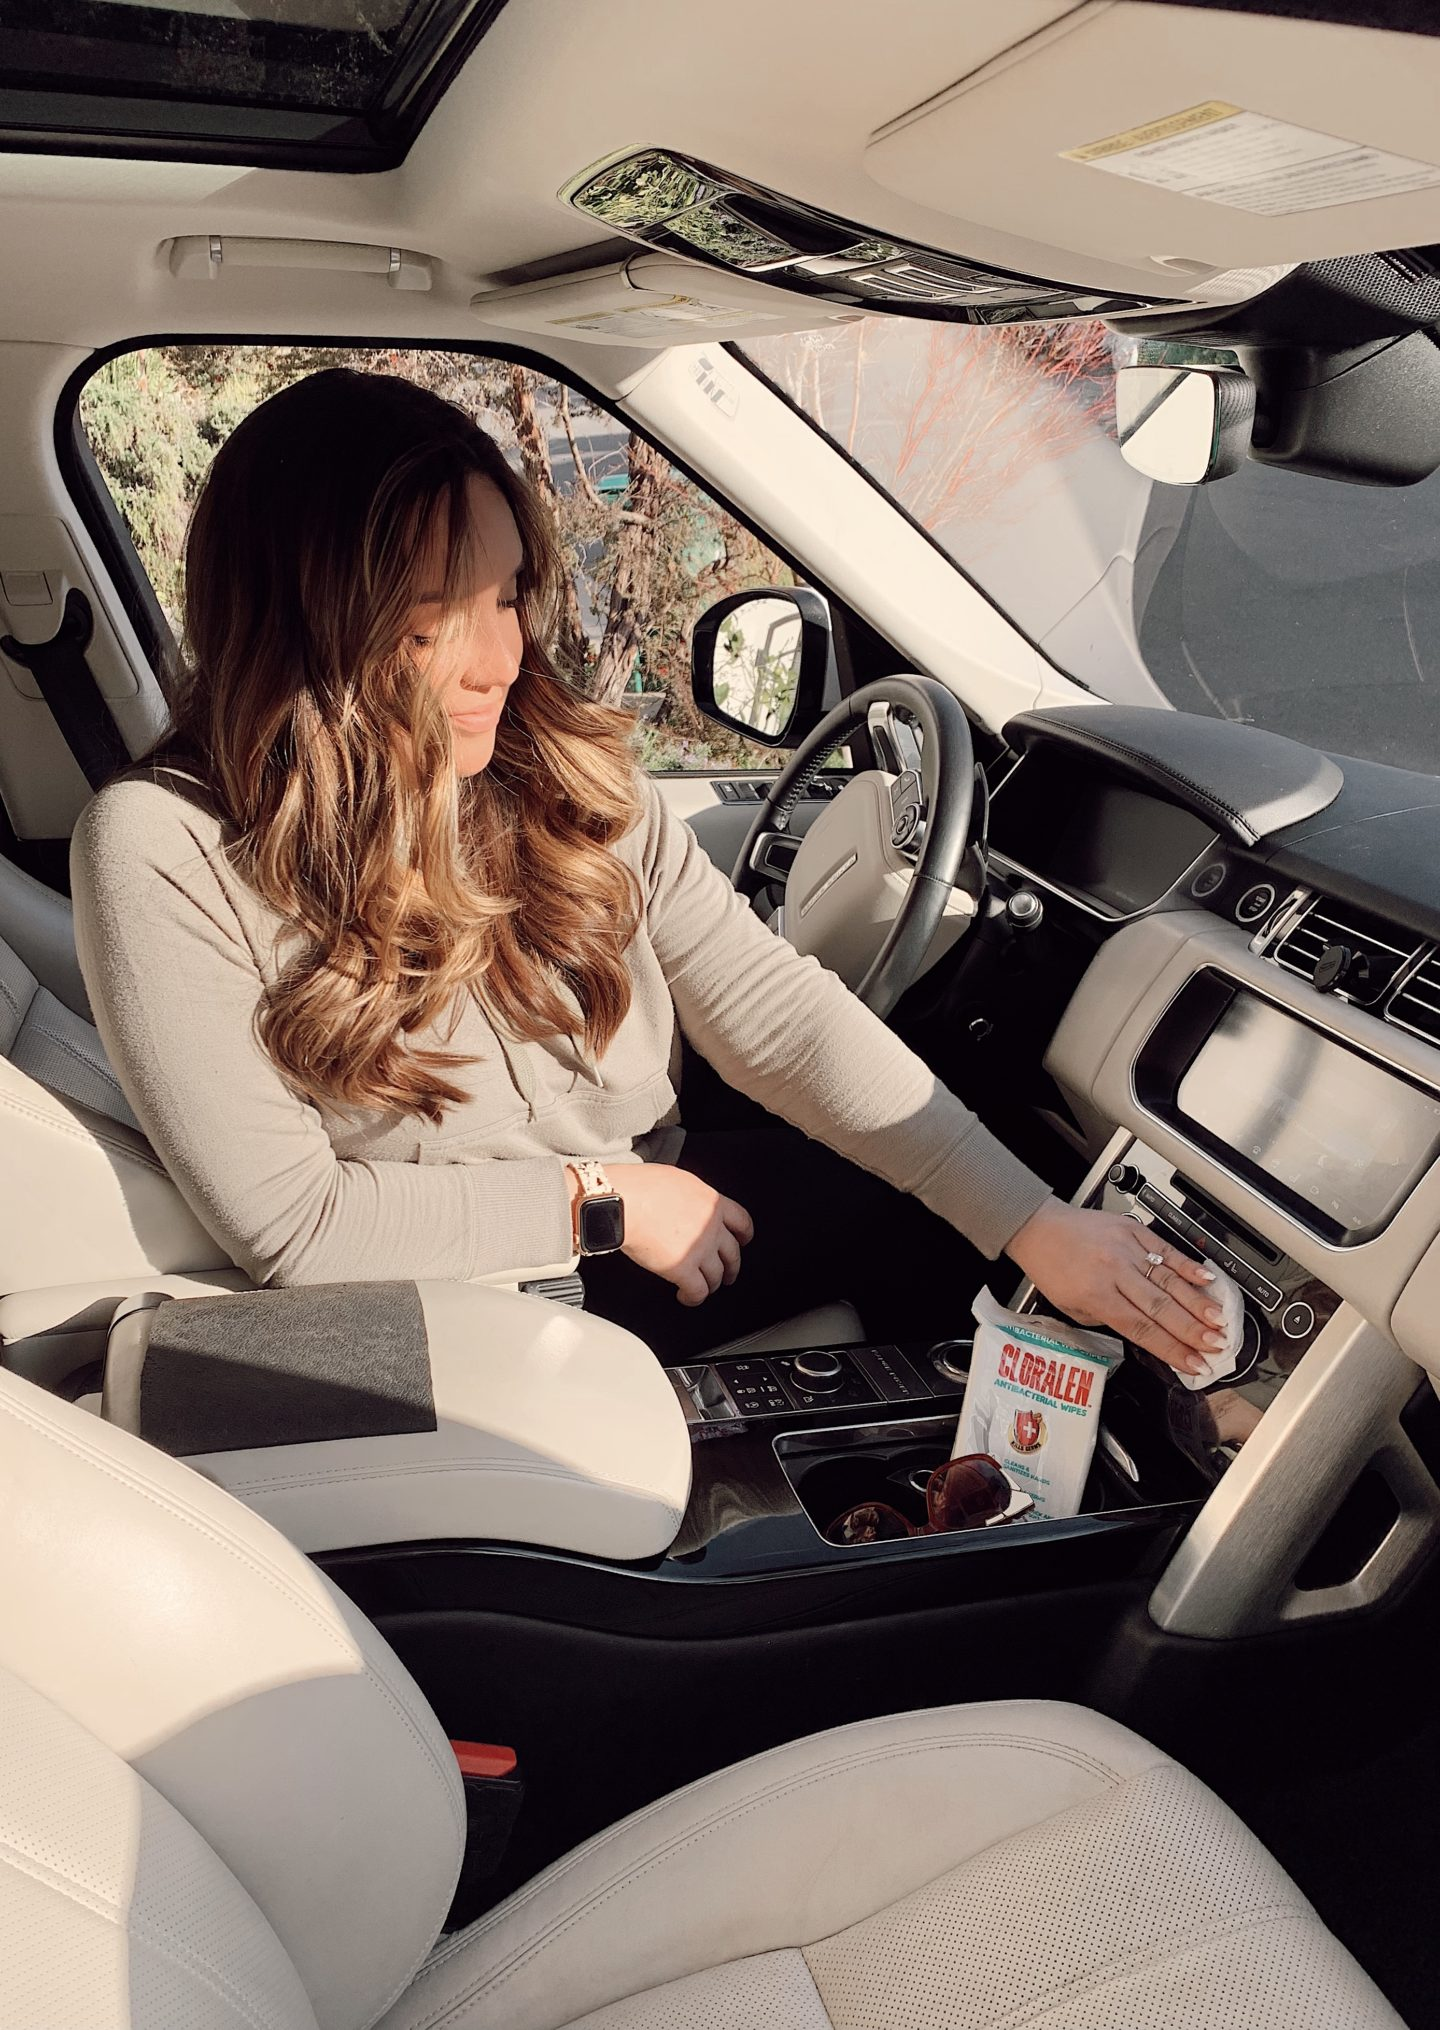 CLORALEN wipes |Spring Cleaning Hacks by popular San Francisco lifestyle blog, Just Add Glam: image of a woman using Cloralen wipes in her car.